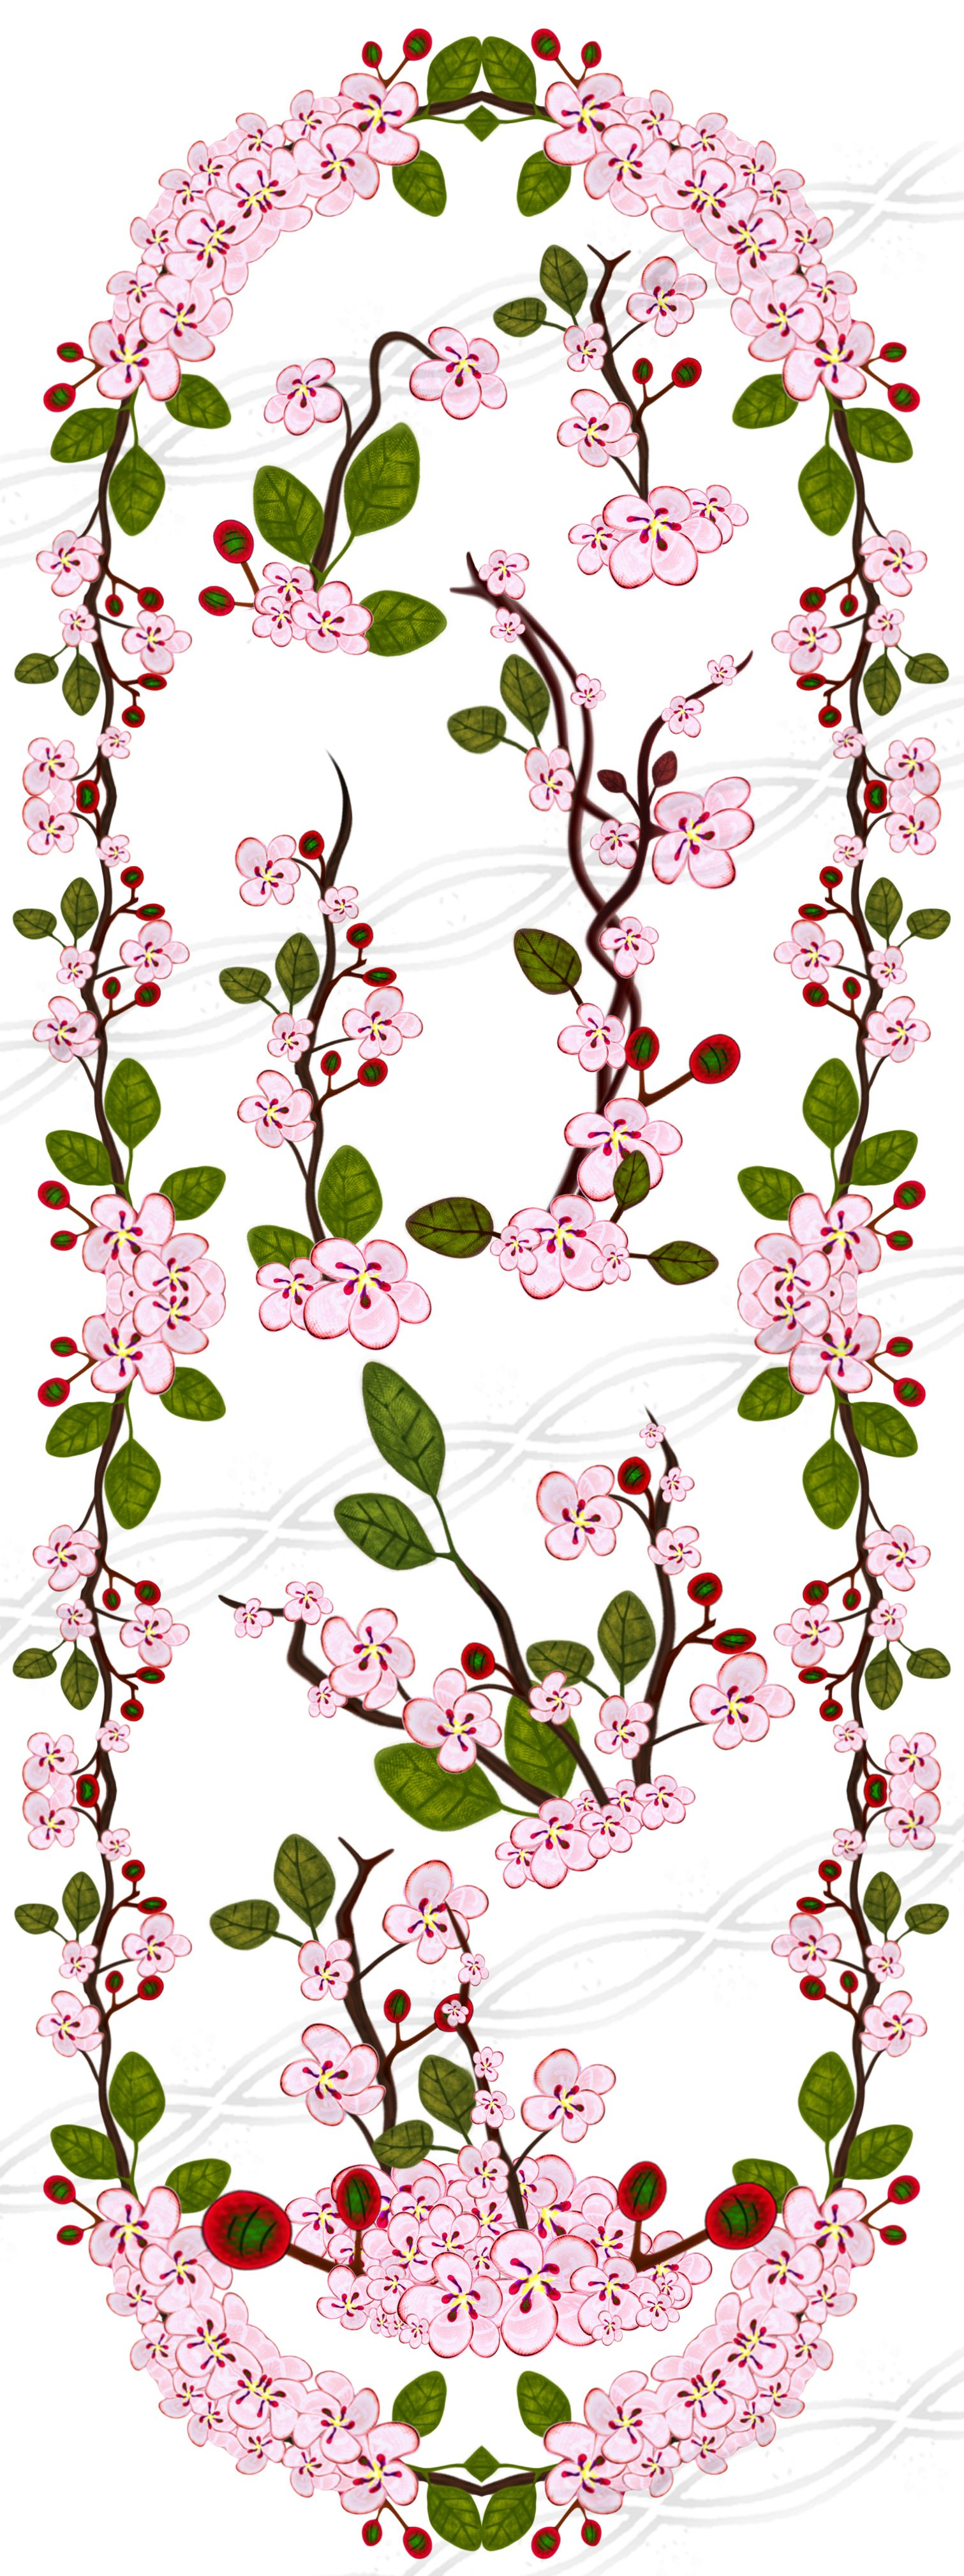 Cherry blossom borders and frames digital clip art, wedding ...